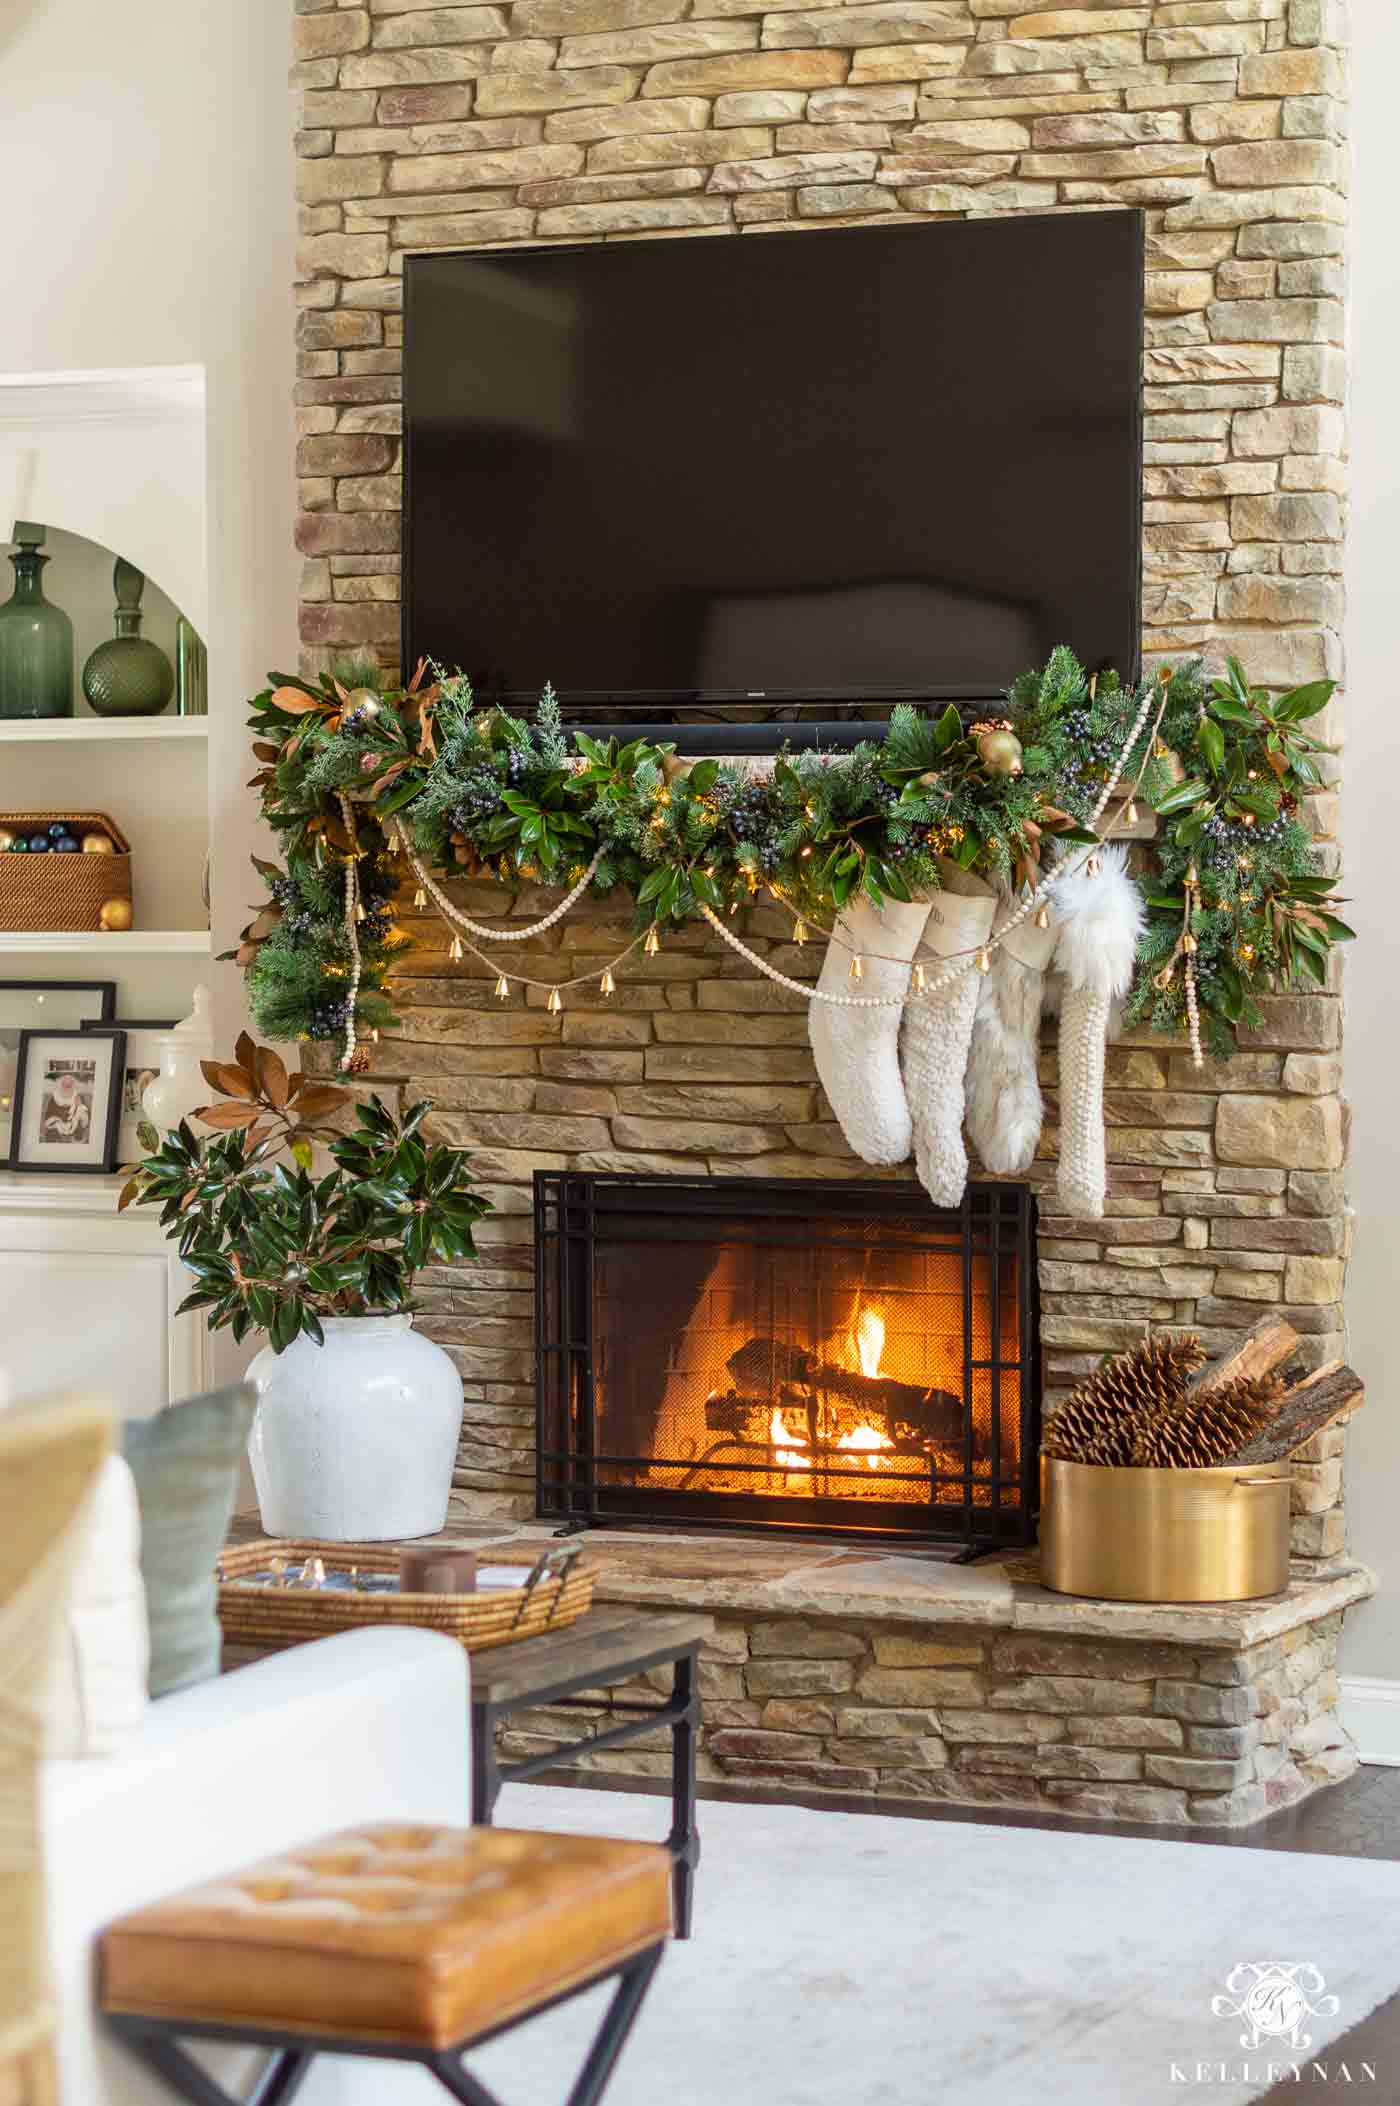 How to Decorate a Stone Fireplace and mantel with Christmas Decor